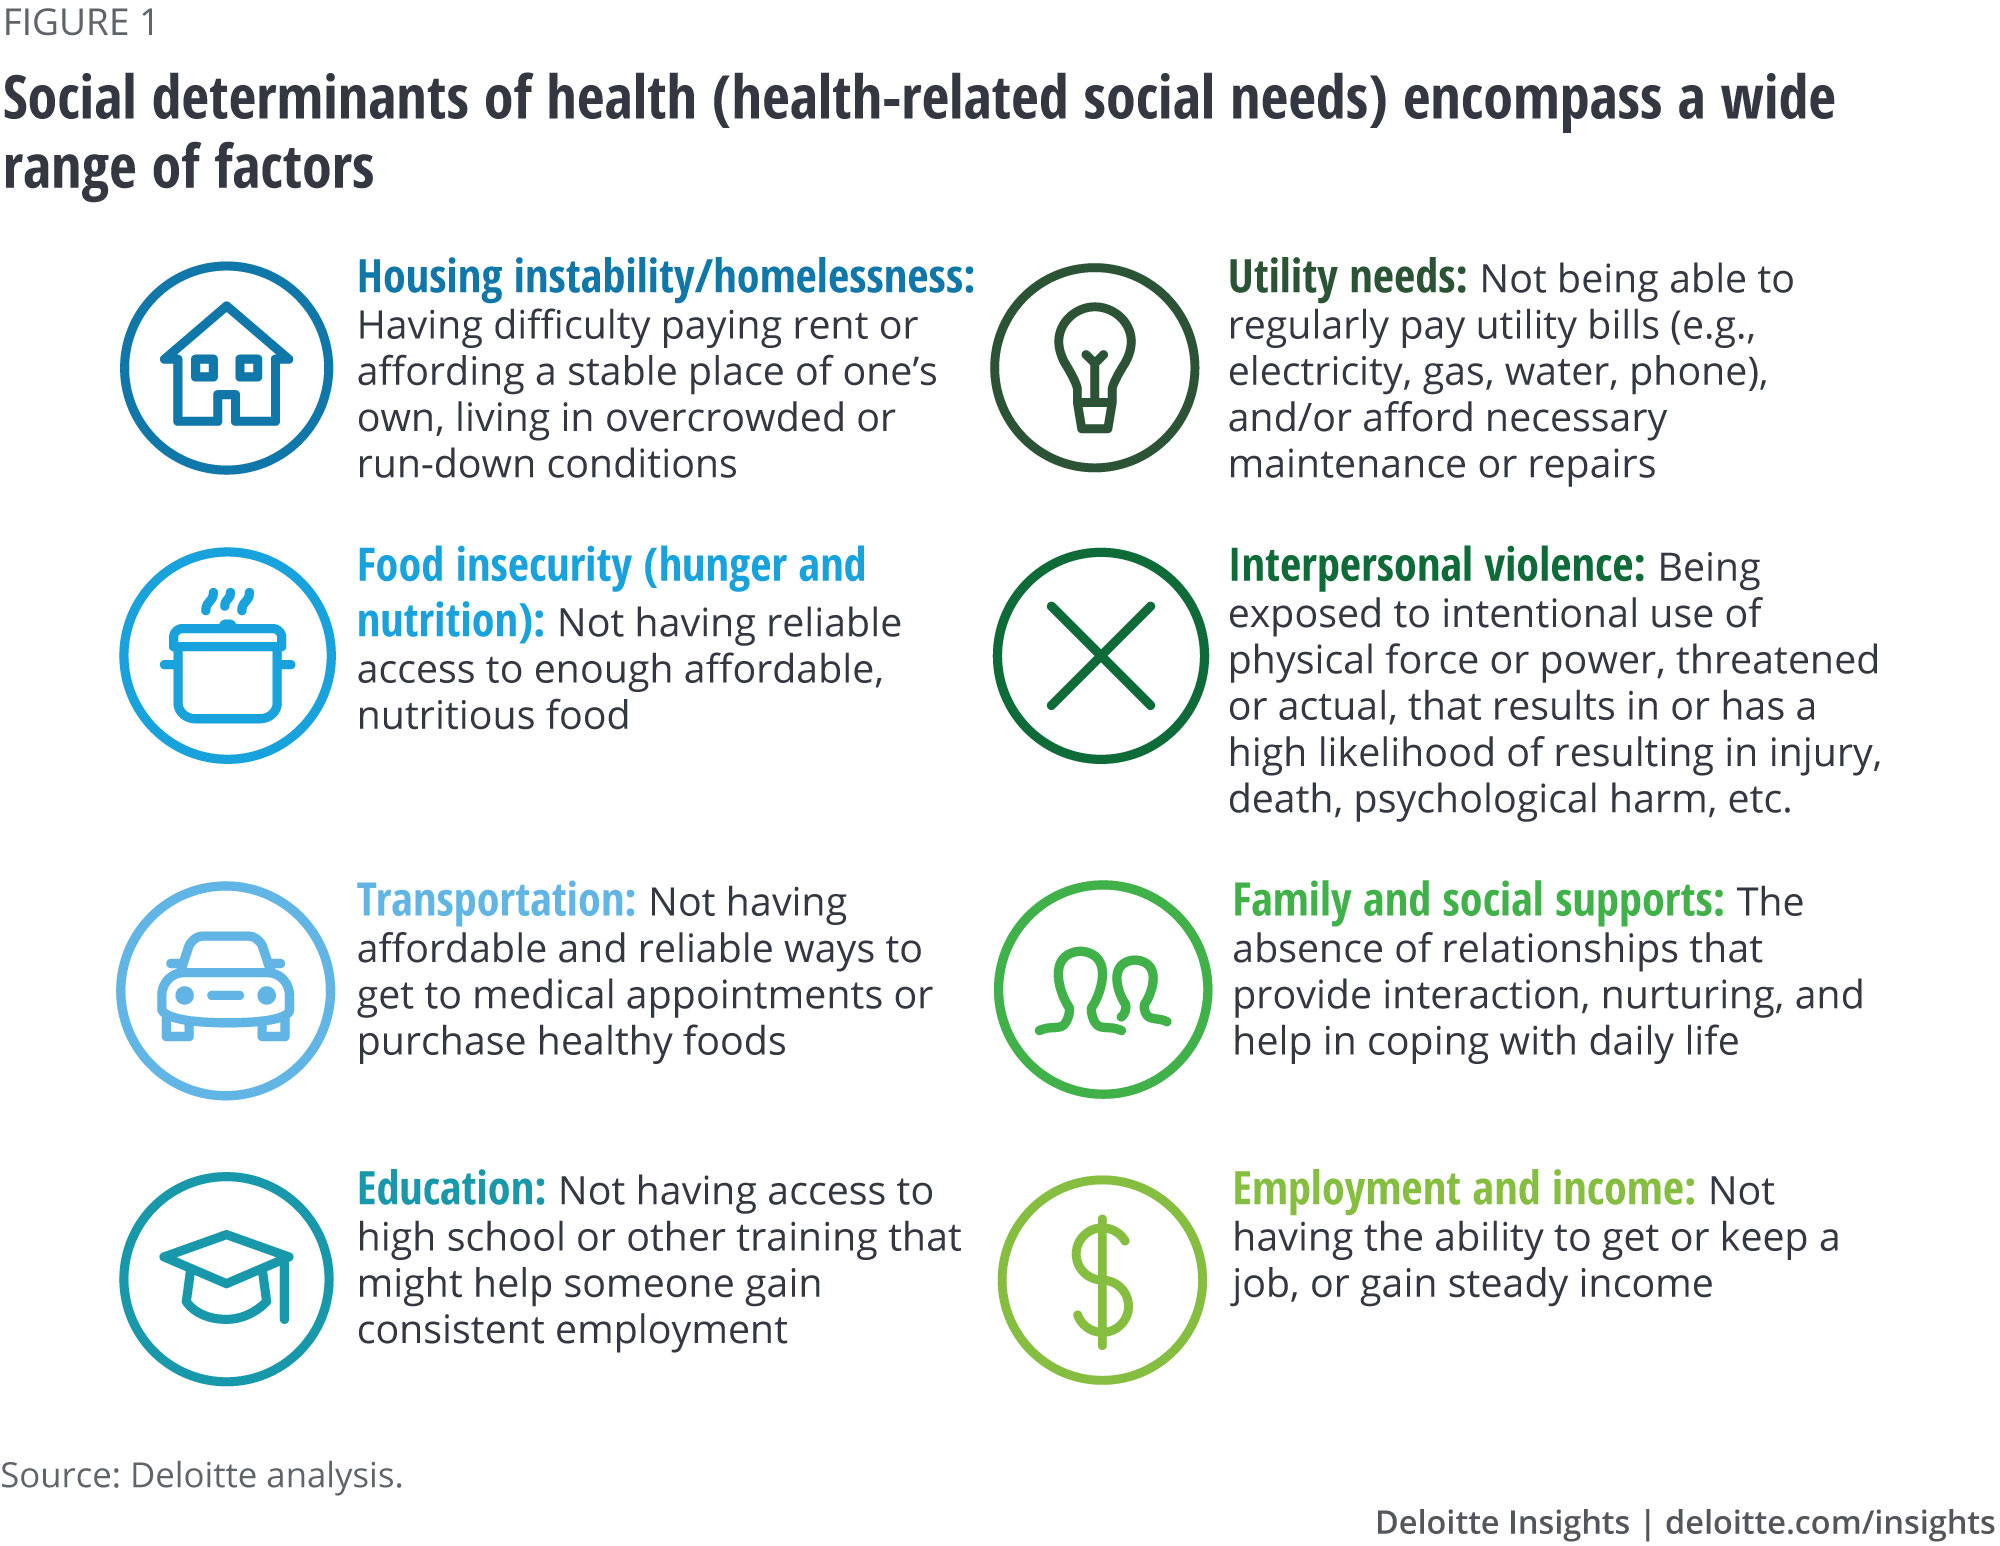 Social determinants of health (health-related social needs) encompass a wide range of factors